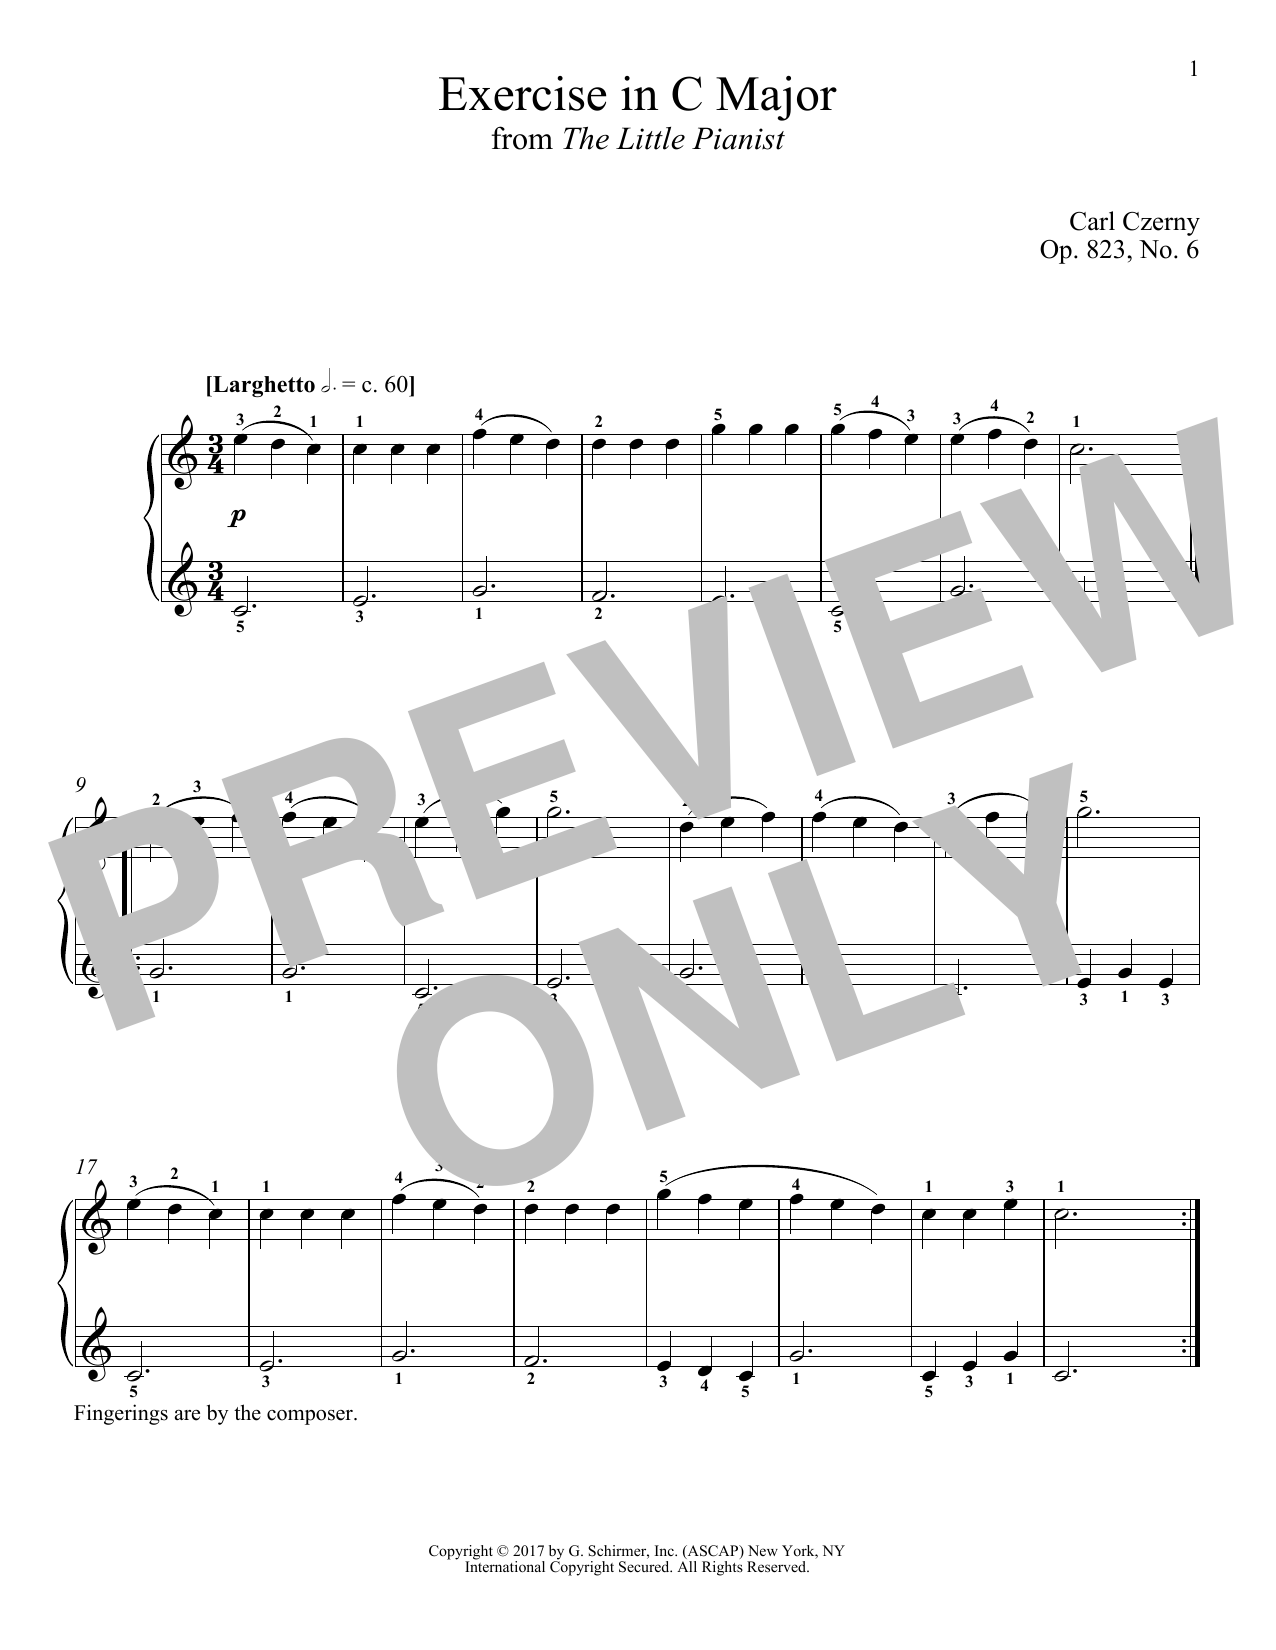 Download Carl Czerny 'Exercise in C Major, Op. 823, No. 6' Digital Sheet Music Notes & Chords and start playing in minutes